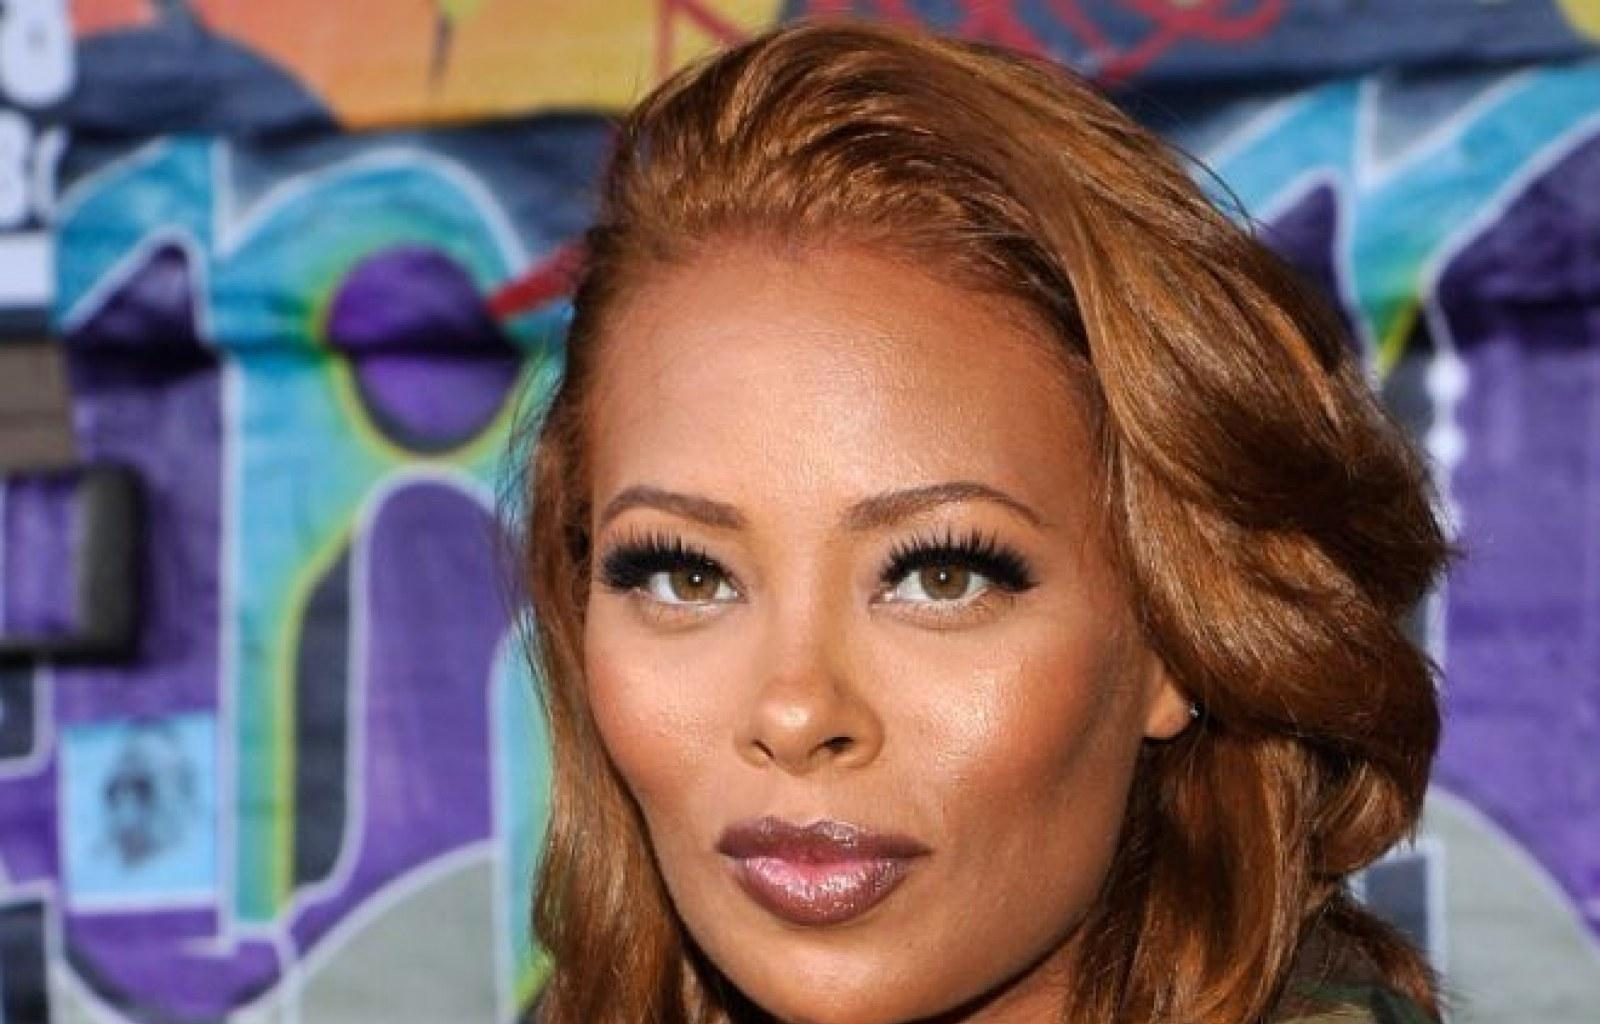 Eva Marcille Loves Being Black - Check Out The Video She Shared